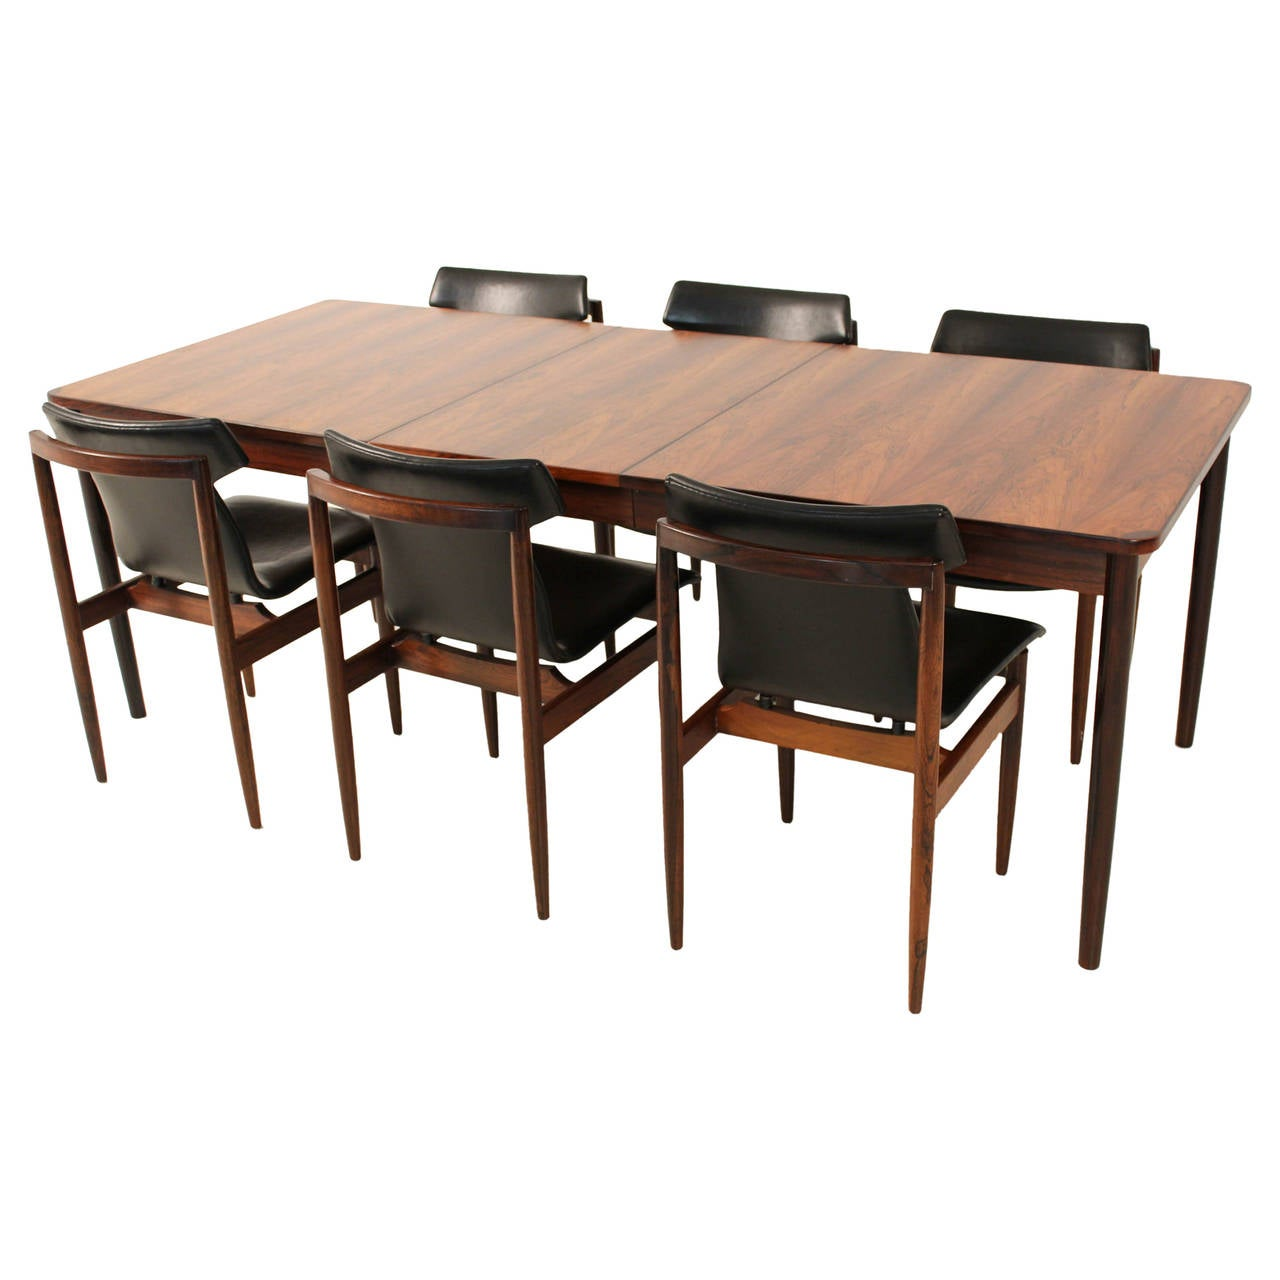 Mid century modern dining table by fristho at 1stdibs for Dining room furniture modern